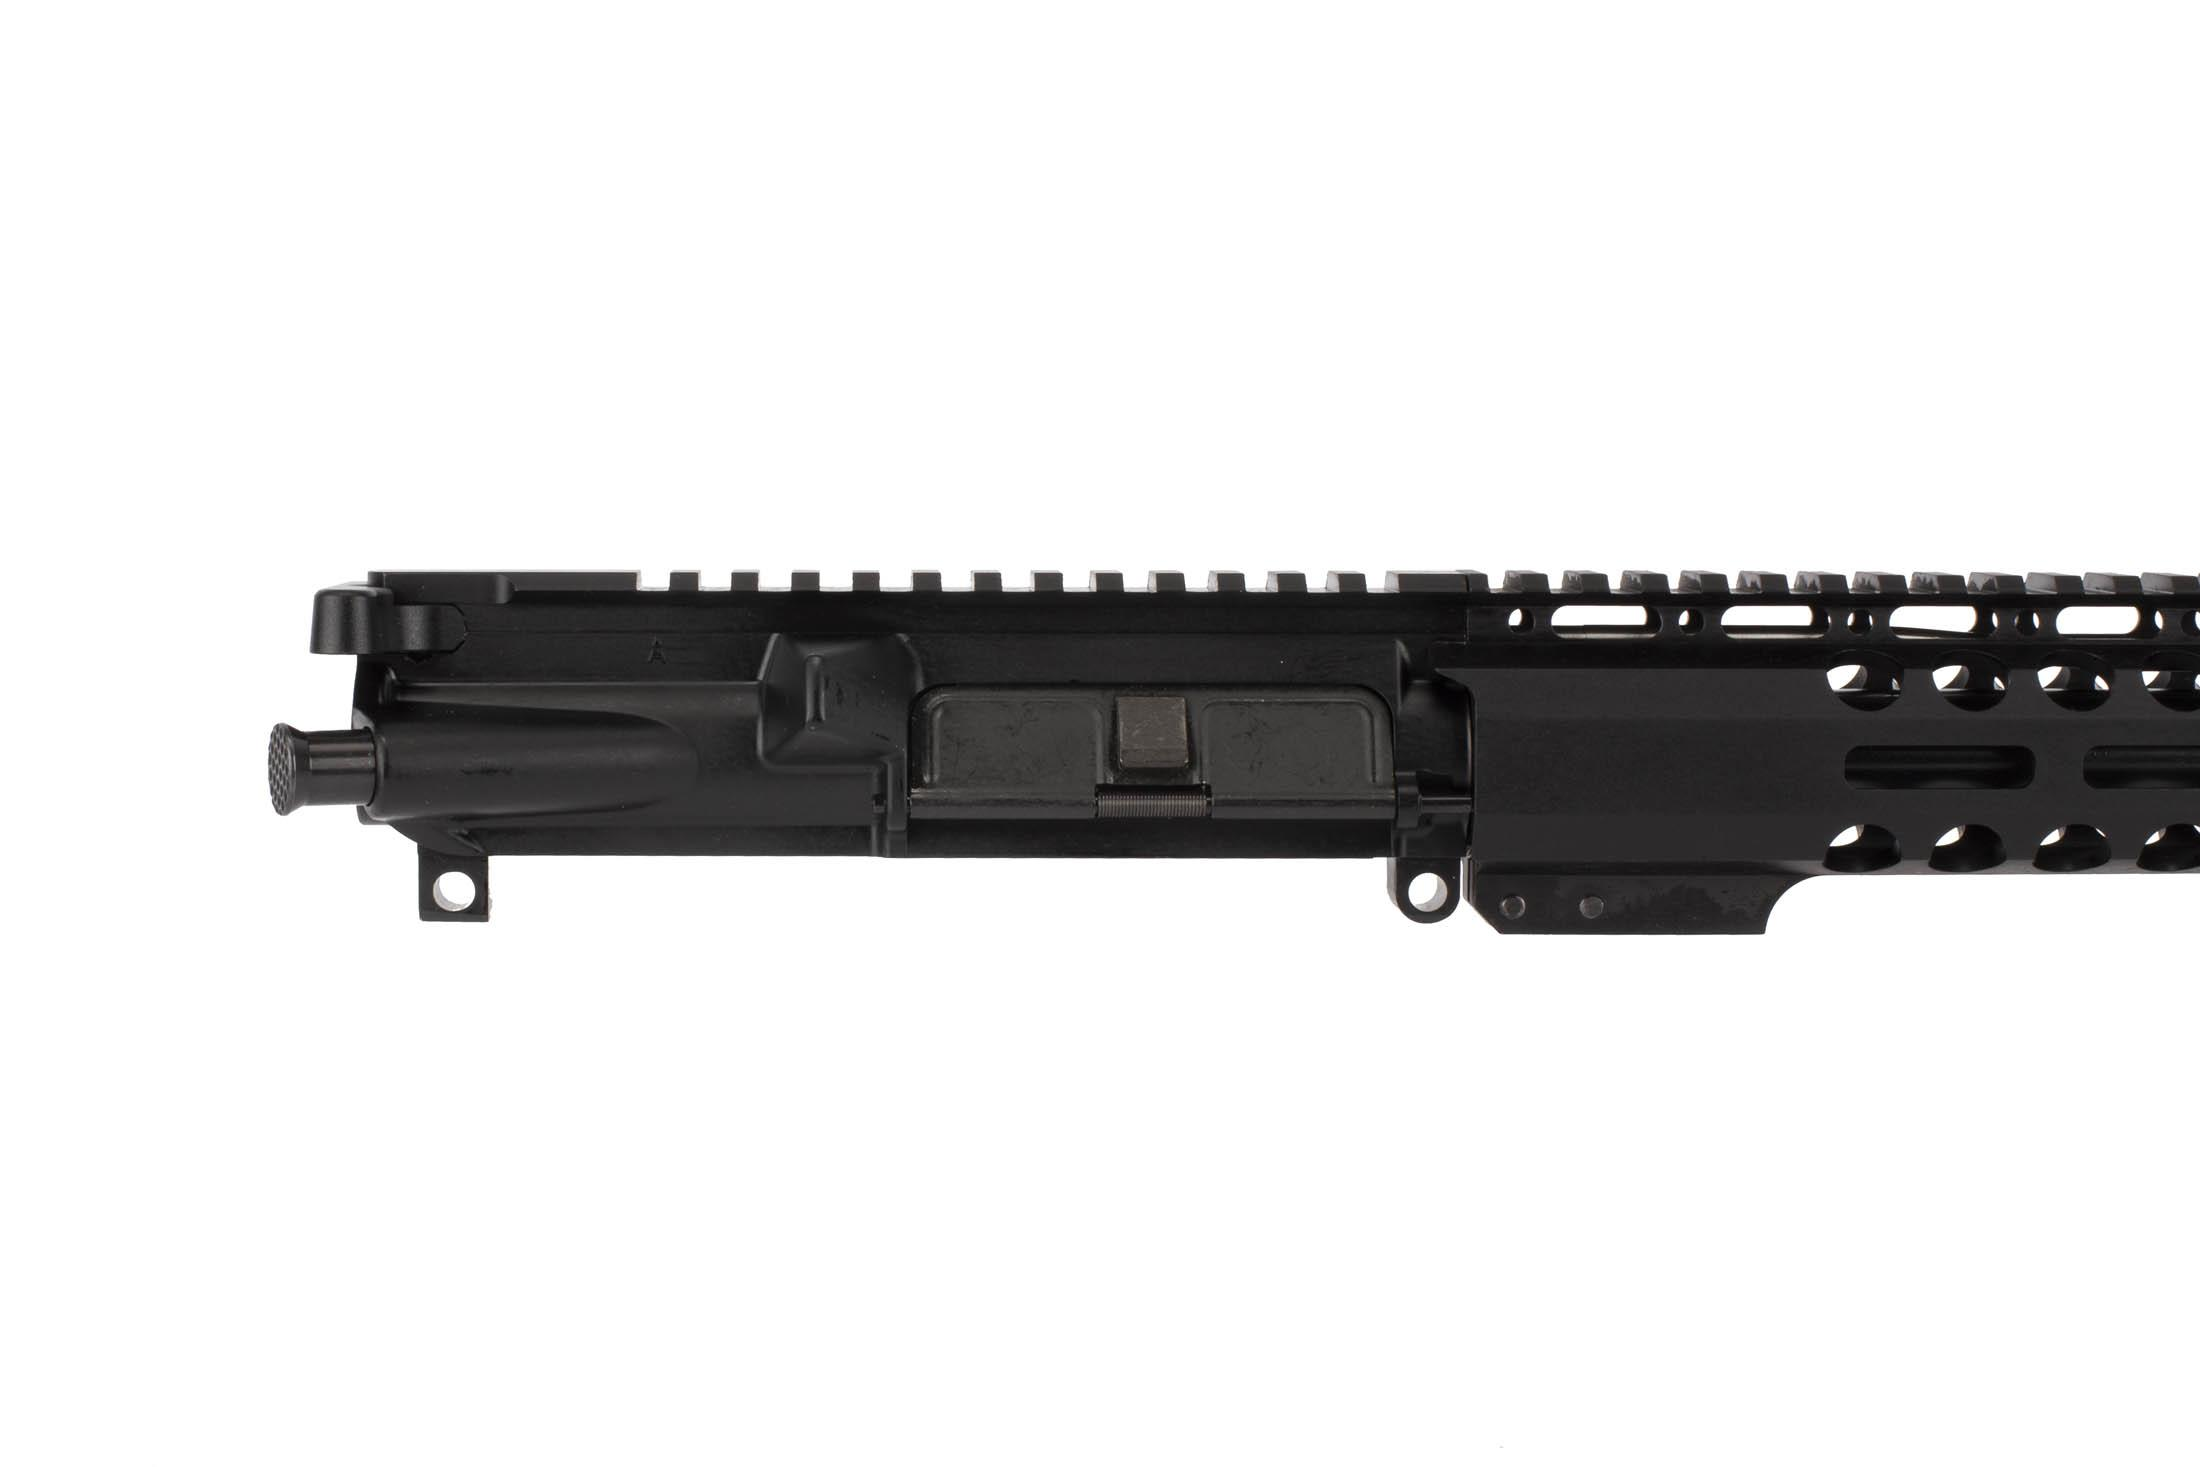 Exclusive Radical Firearms 15in M-LOK rail uses new 3rd gen mounting system